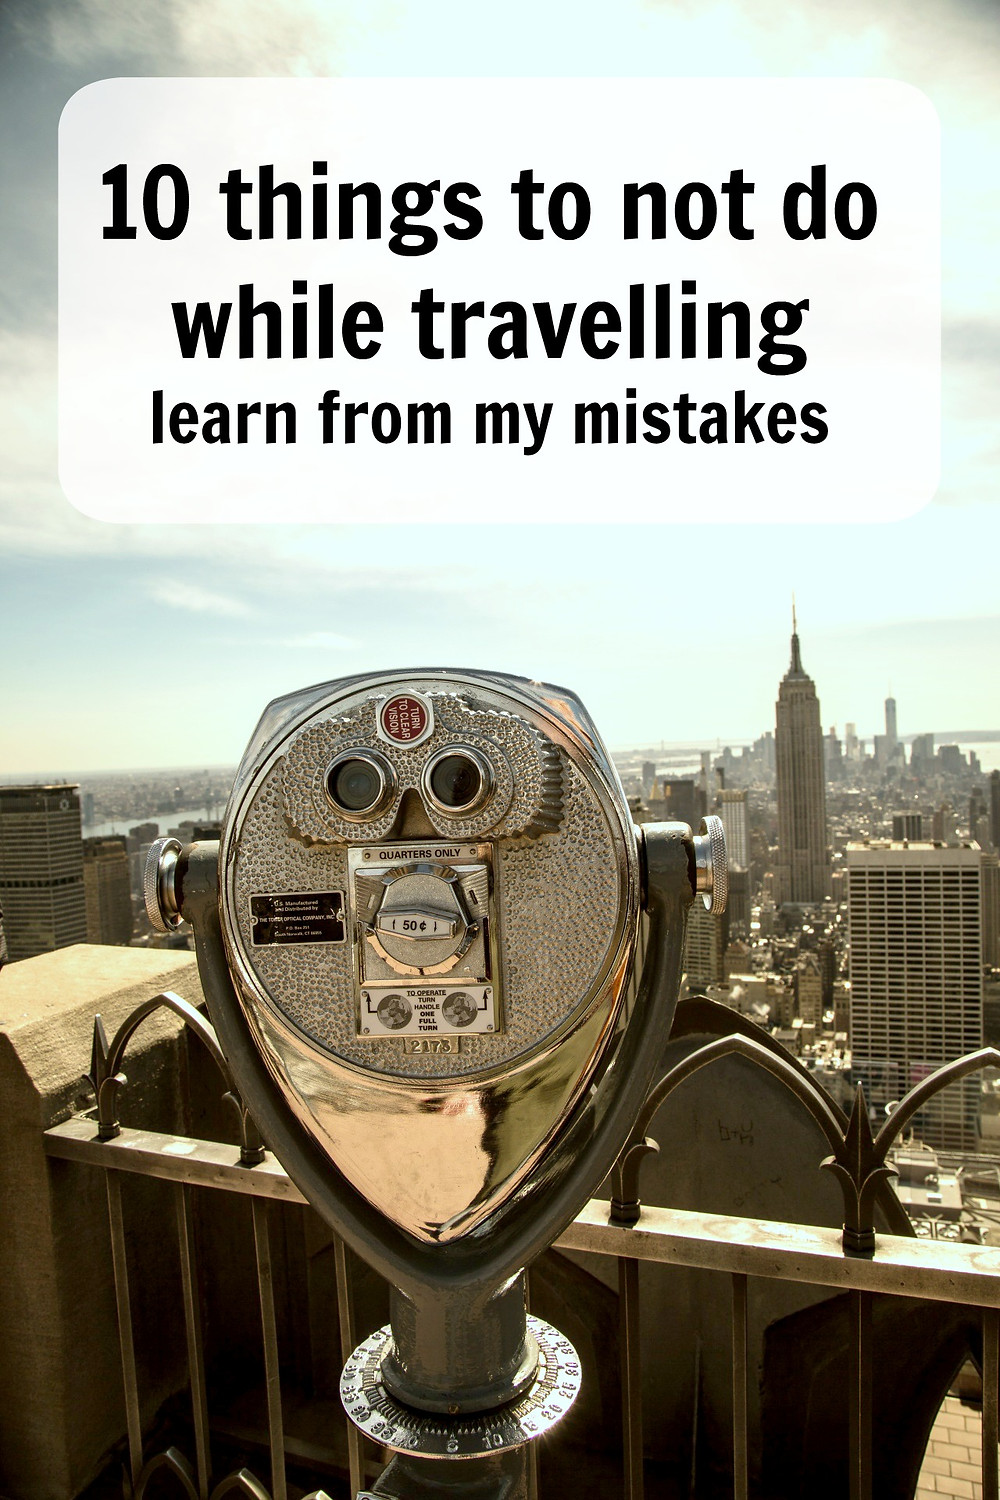 10 things to not do while travelling learn from my mistakes